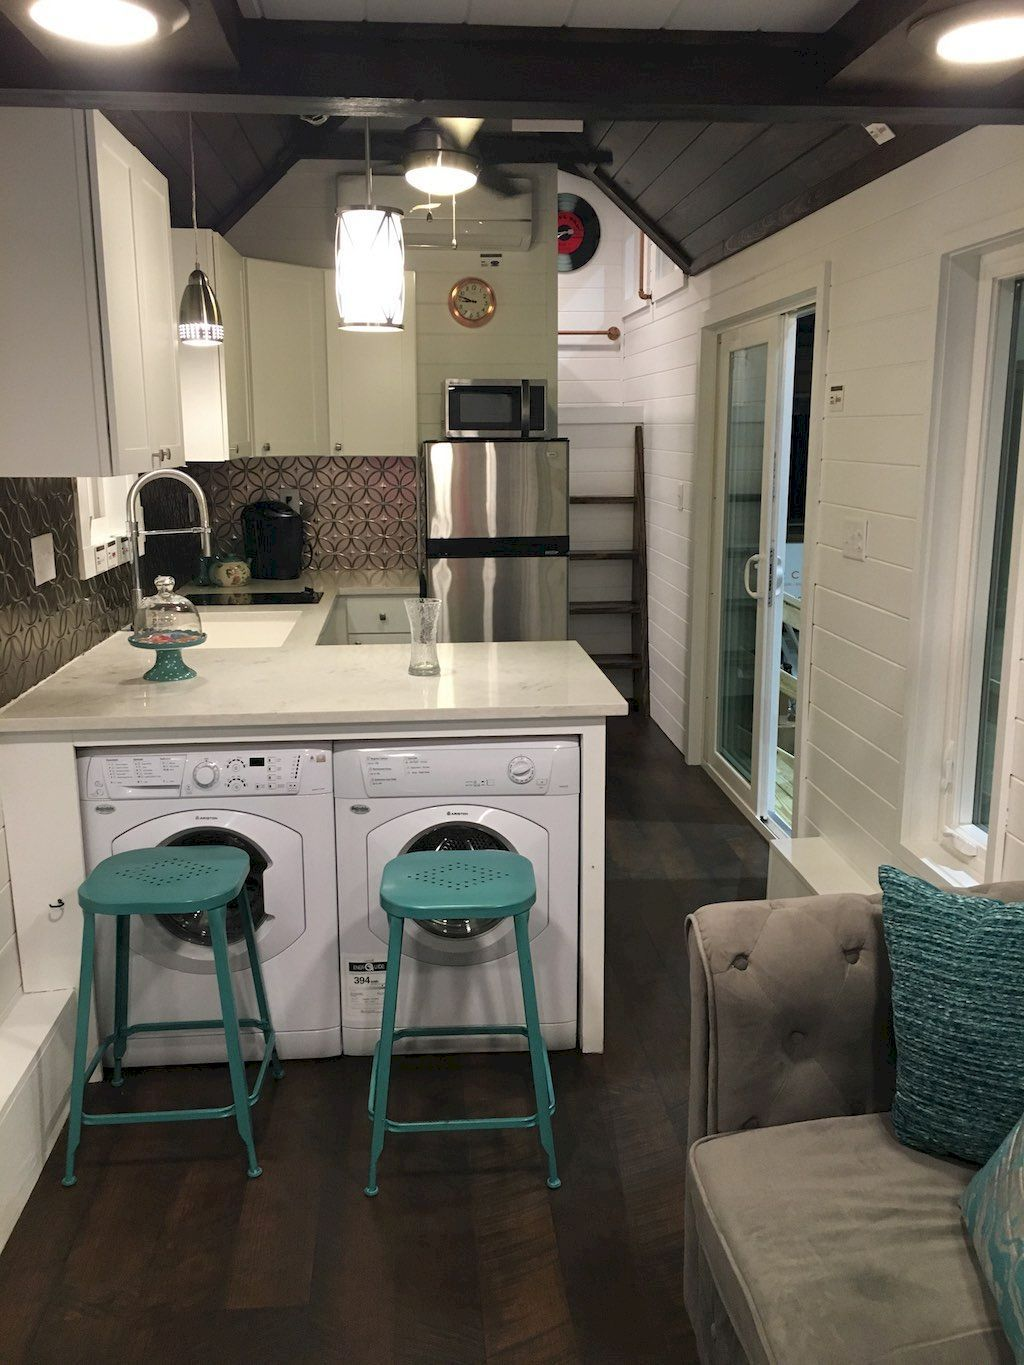 Tiny House Ideas On Wheels Floor Plans Layout 23 Tiny House Bedroom Tiny House Interior Design Low Ceiling Bedroom